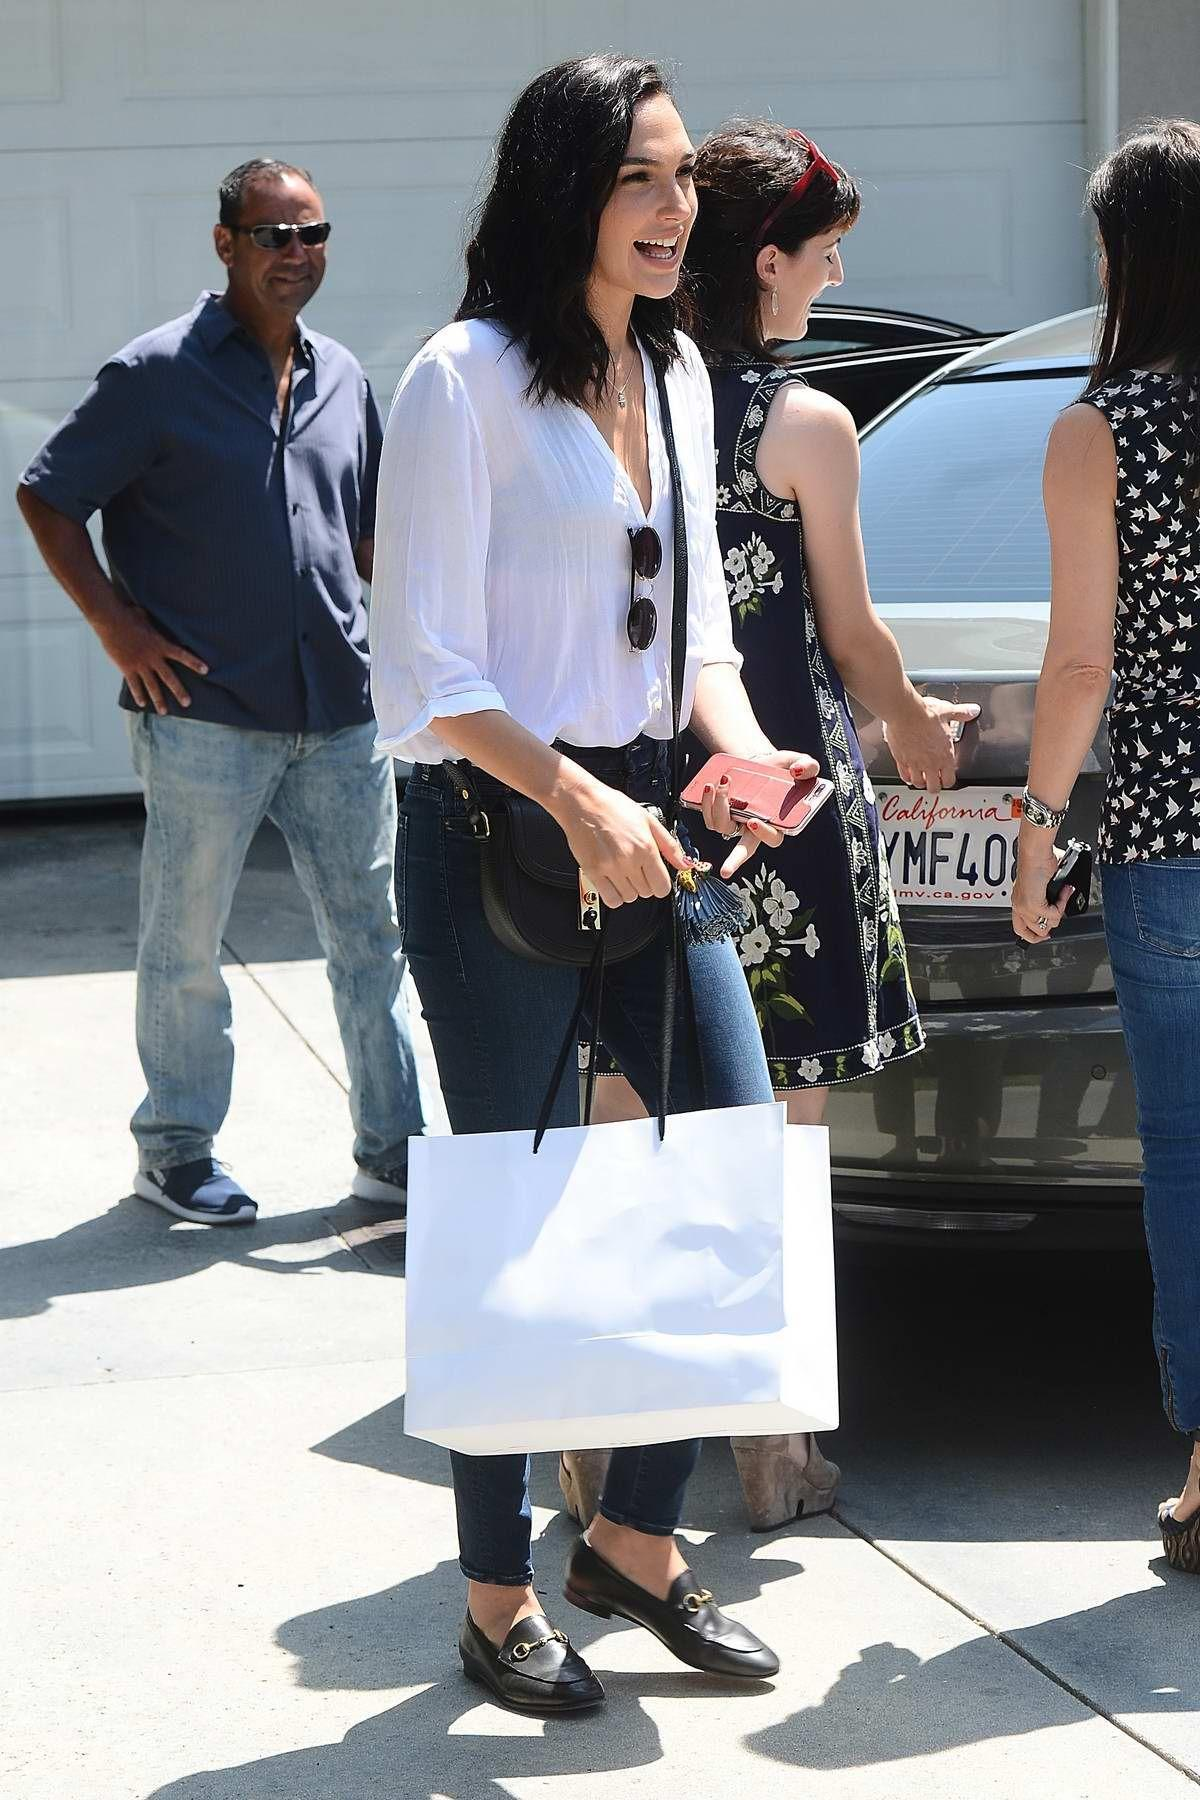 Gal Gadot gifting suite in Brentwood, Los Angeles